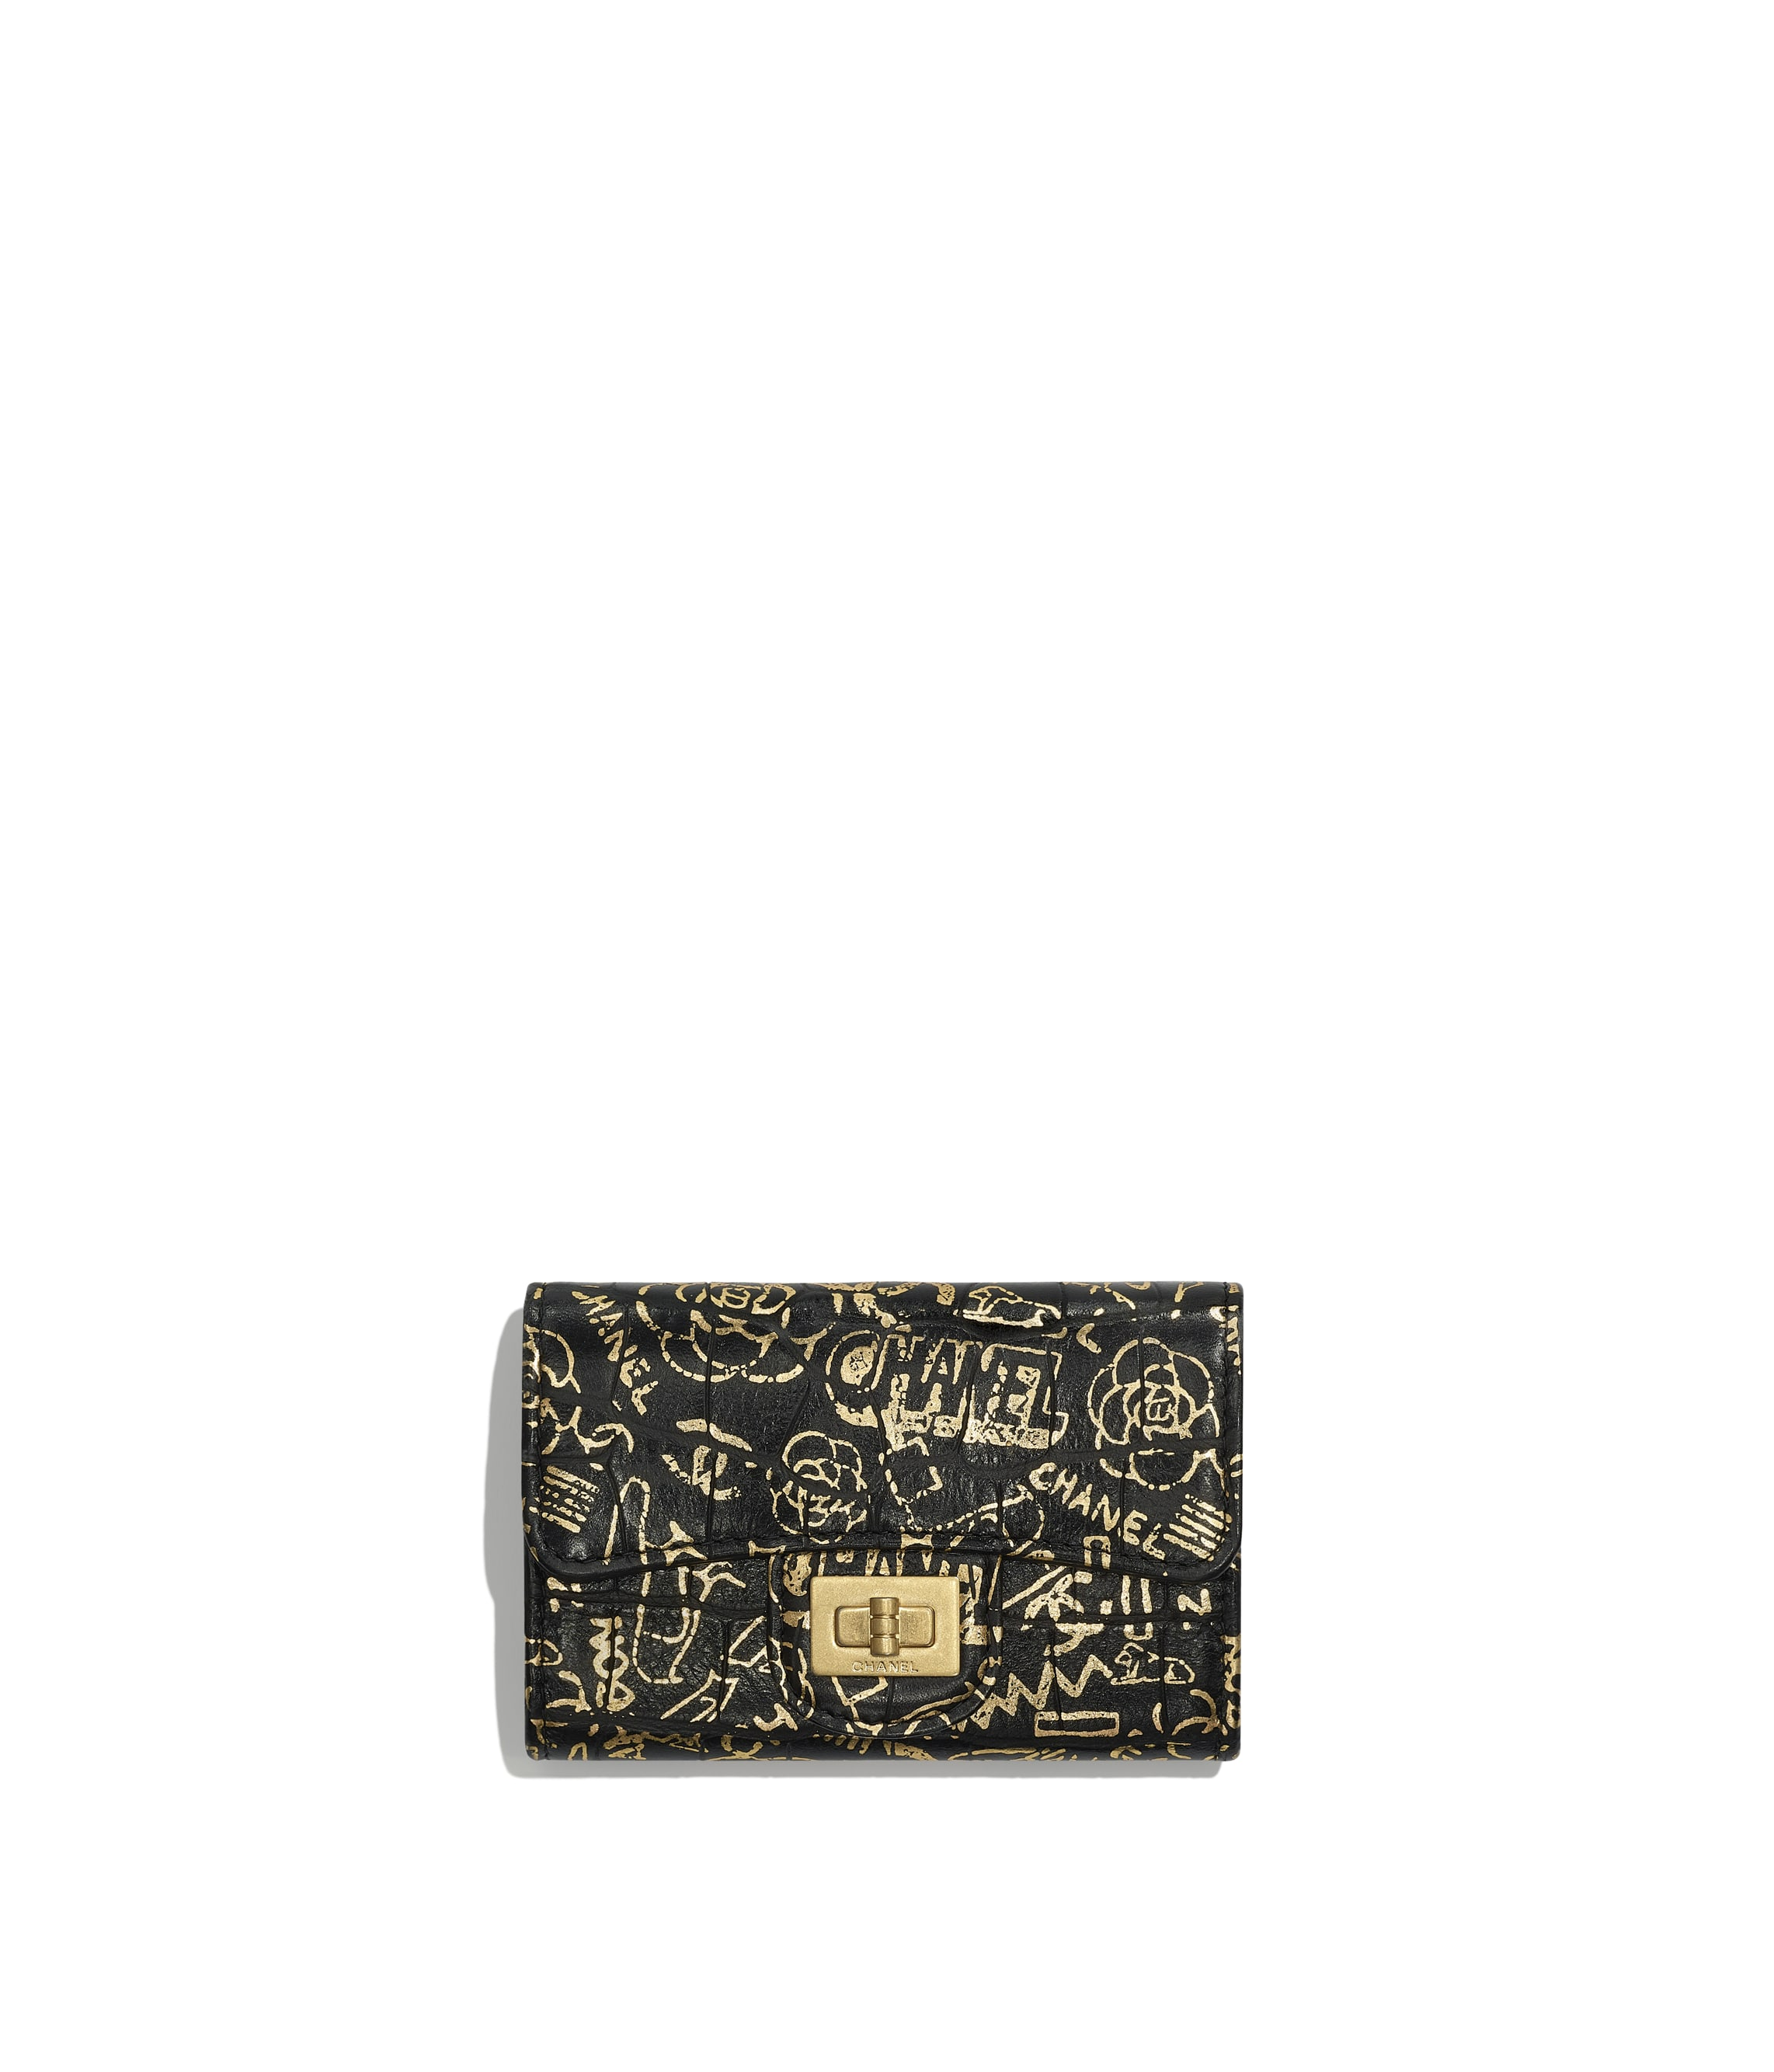 2fc8ed817315 Card Holders - Small Leather Goods - CHANEL